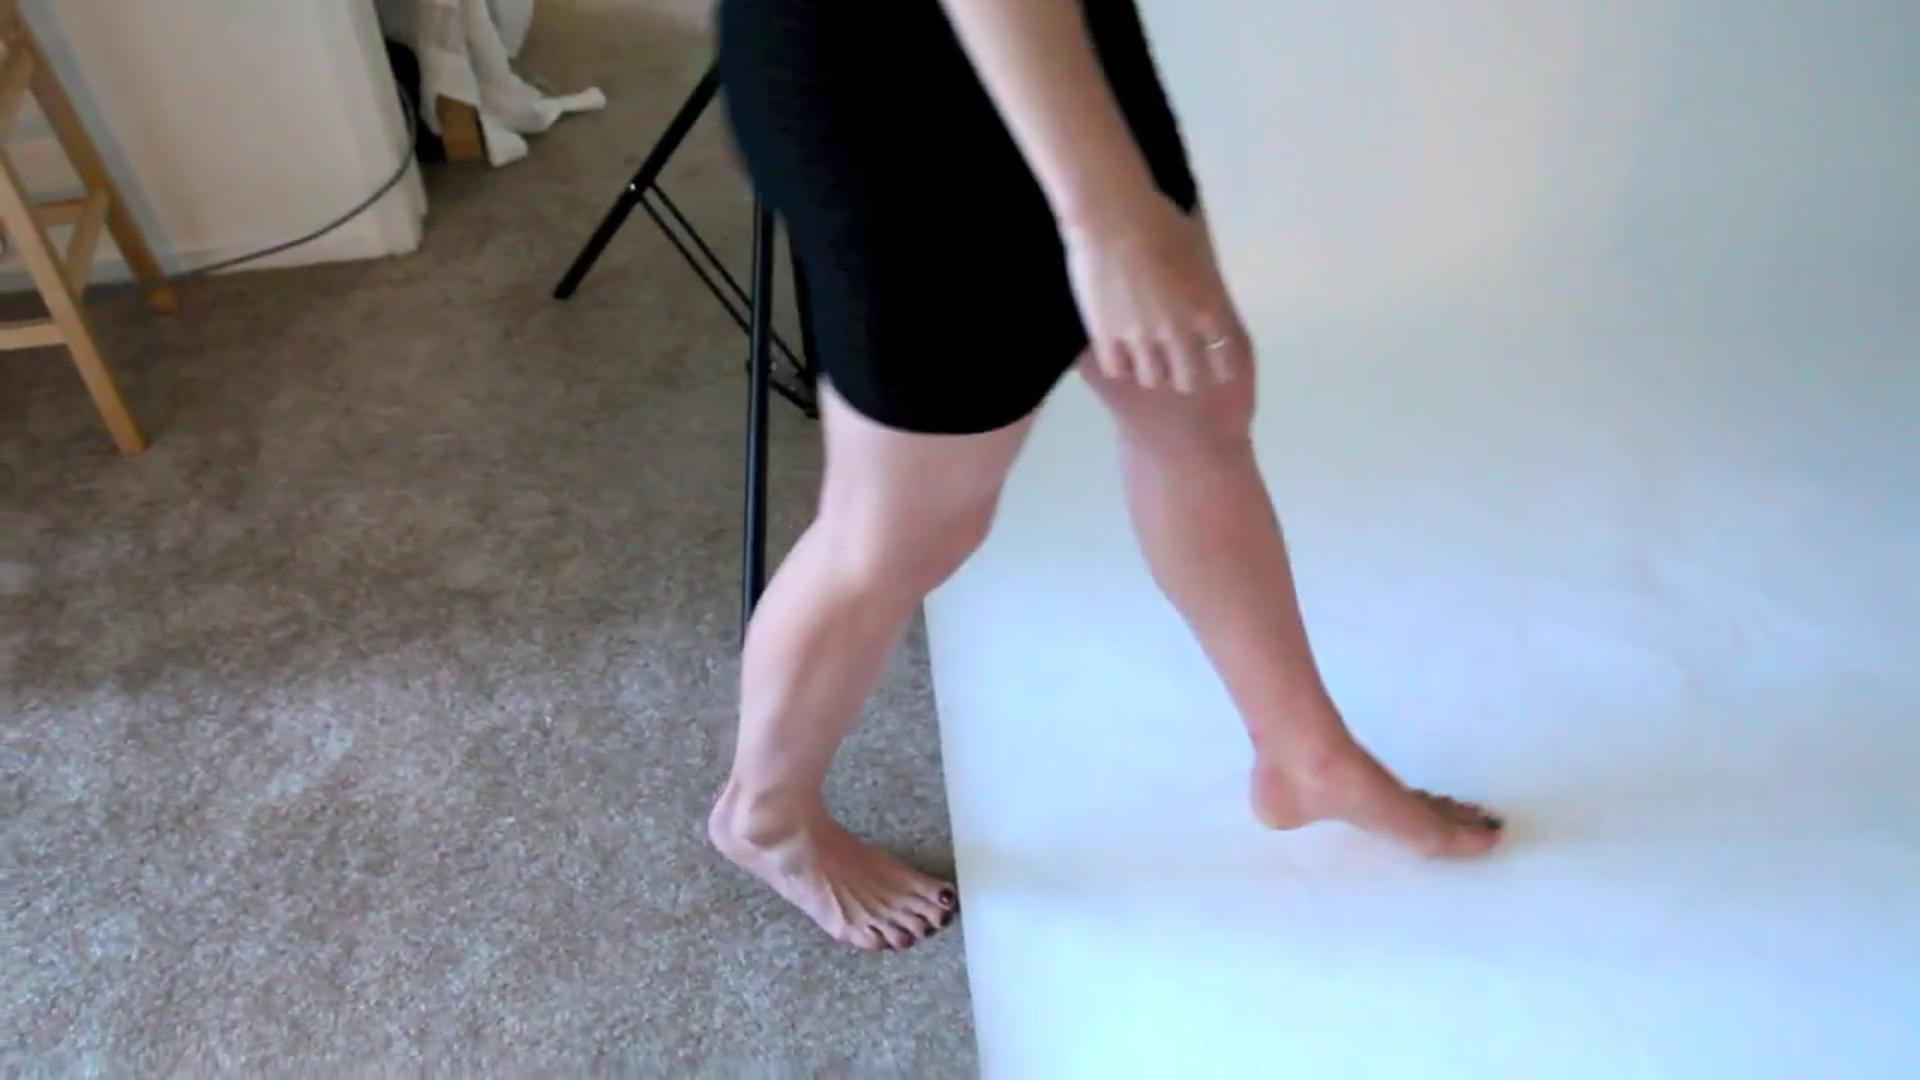 Feet Ashley Smith nudes (69 photo), Sexy, Is a cute, Selfie, swimsuit 2017